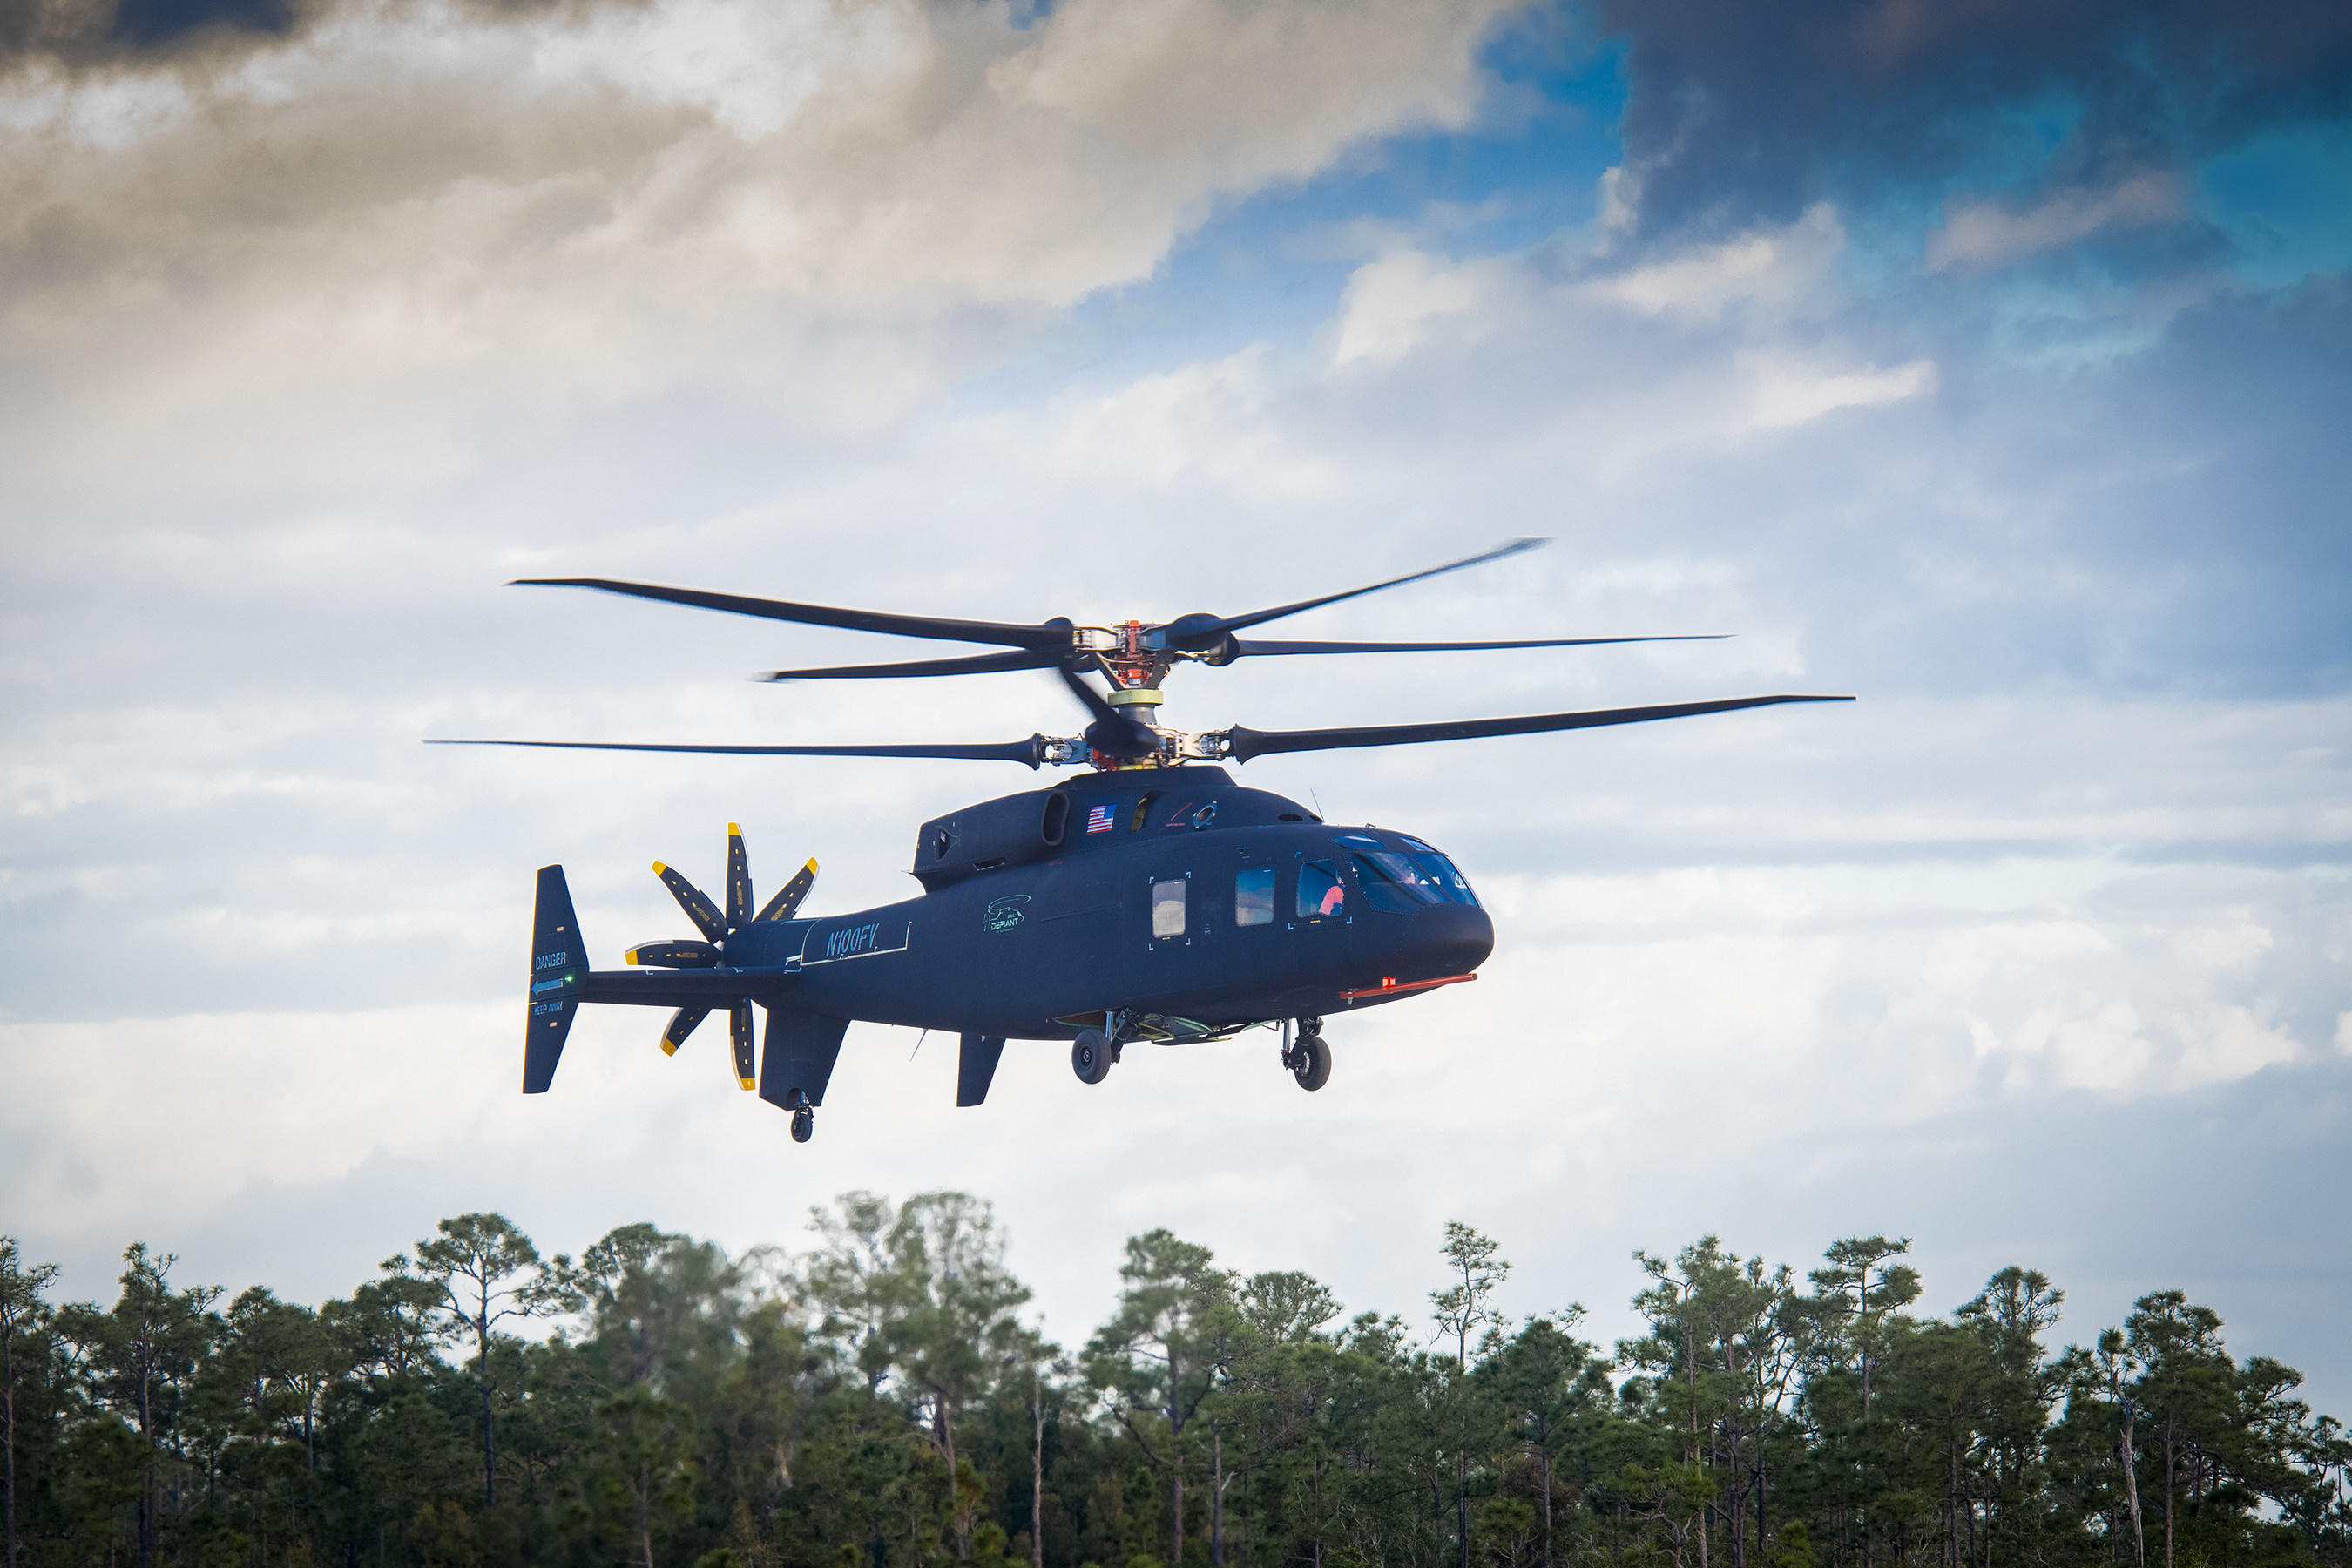 The Sikorsky-Boeing SB1 Defiant helicopter makes its first flight.